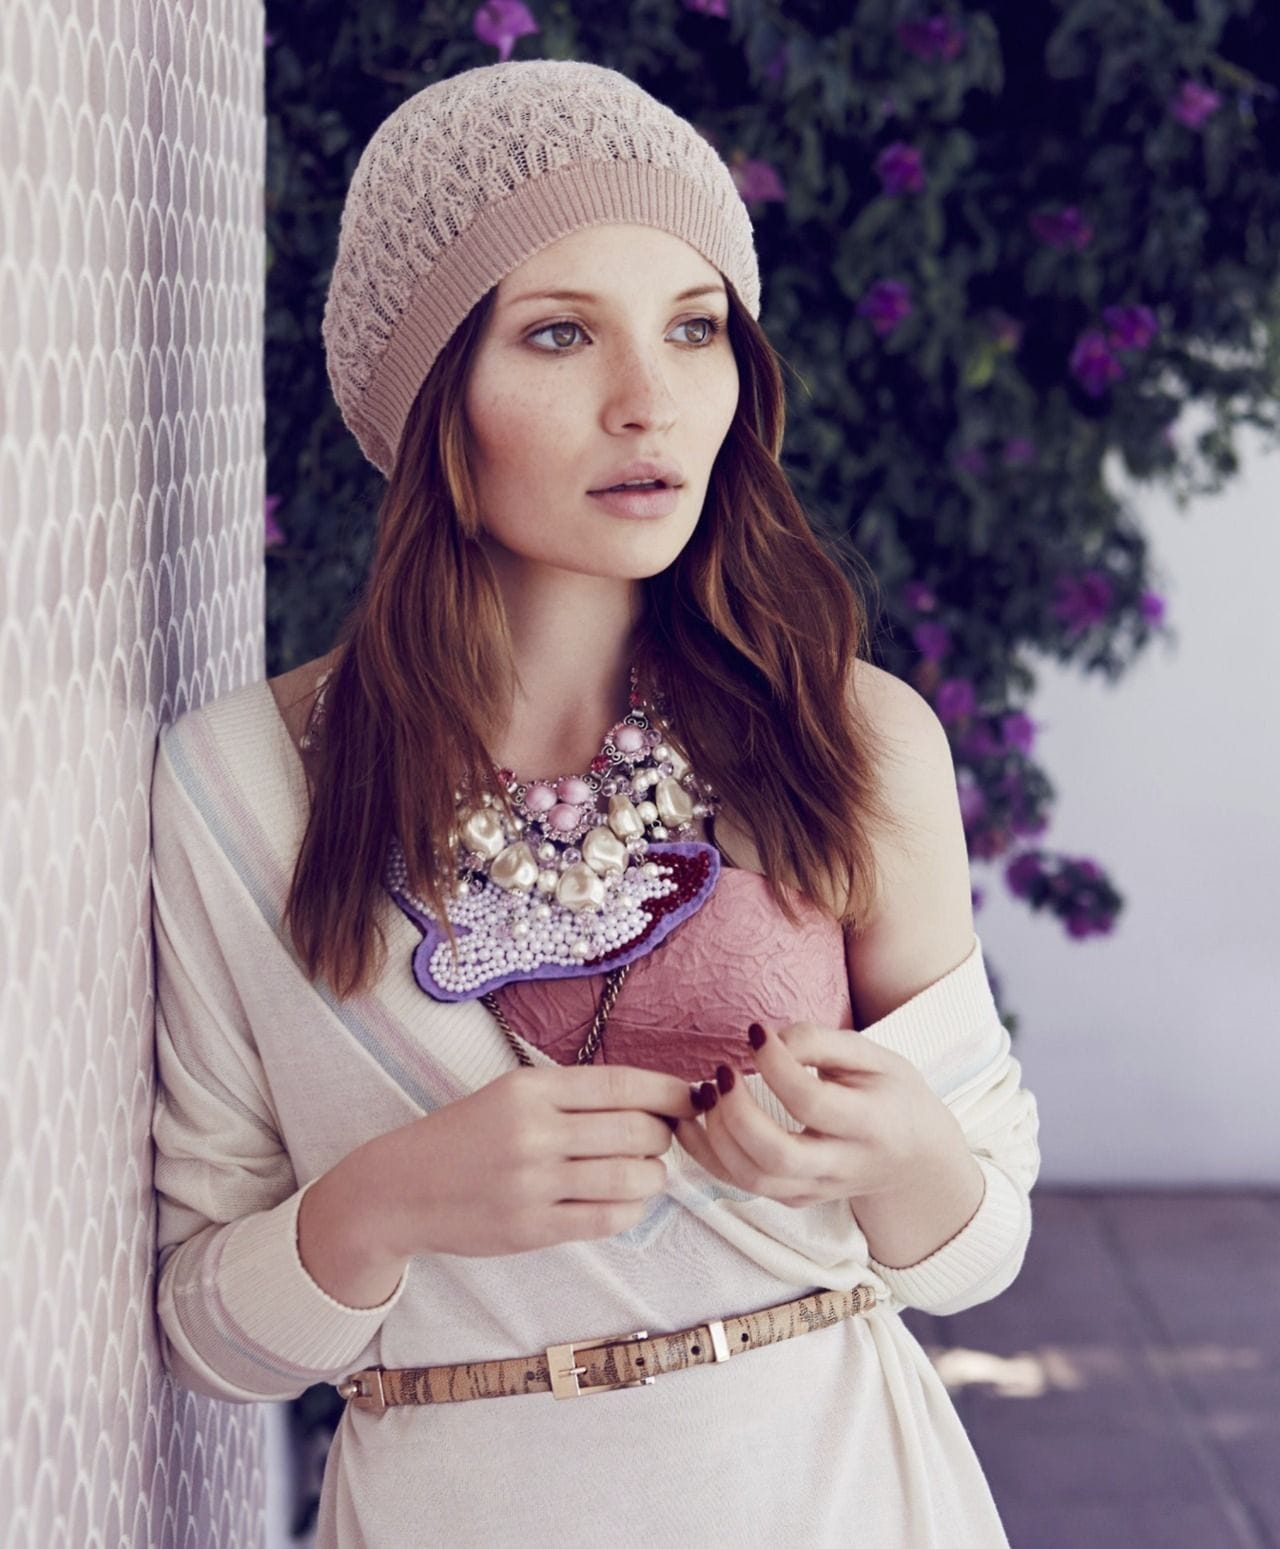 Emily Browning For mobile